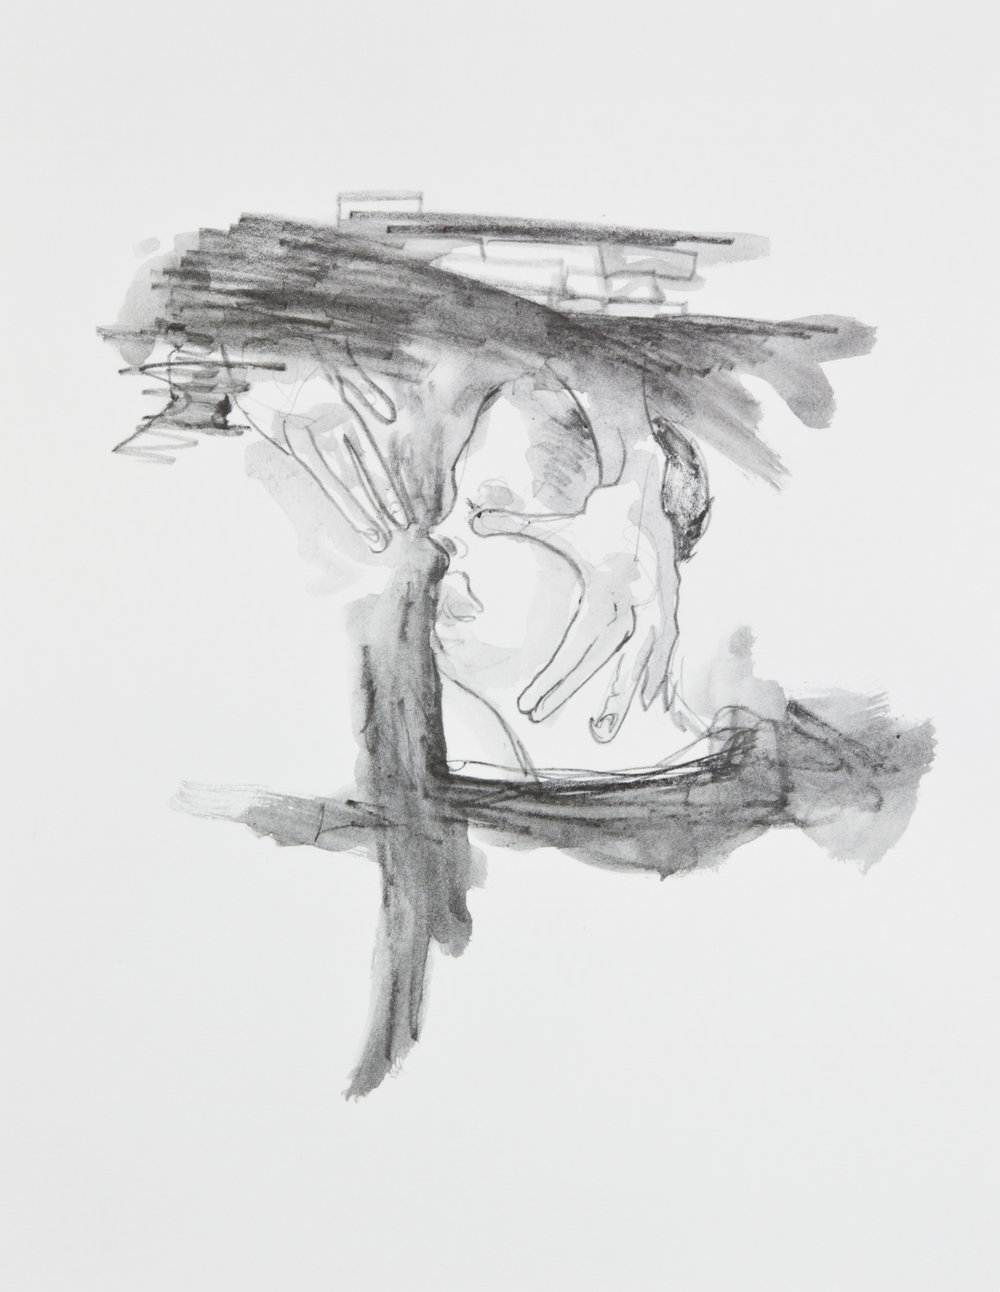 Cupping a Cosmic Face, 2013, graphite on paper, 11x14 inches